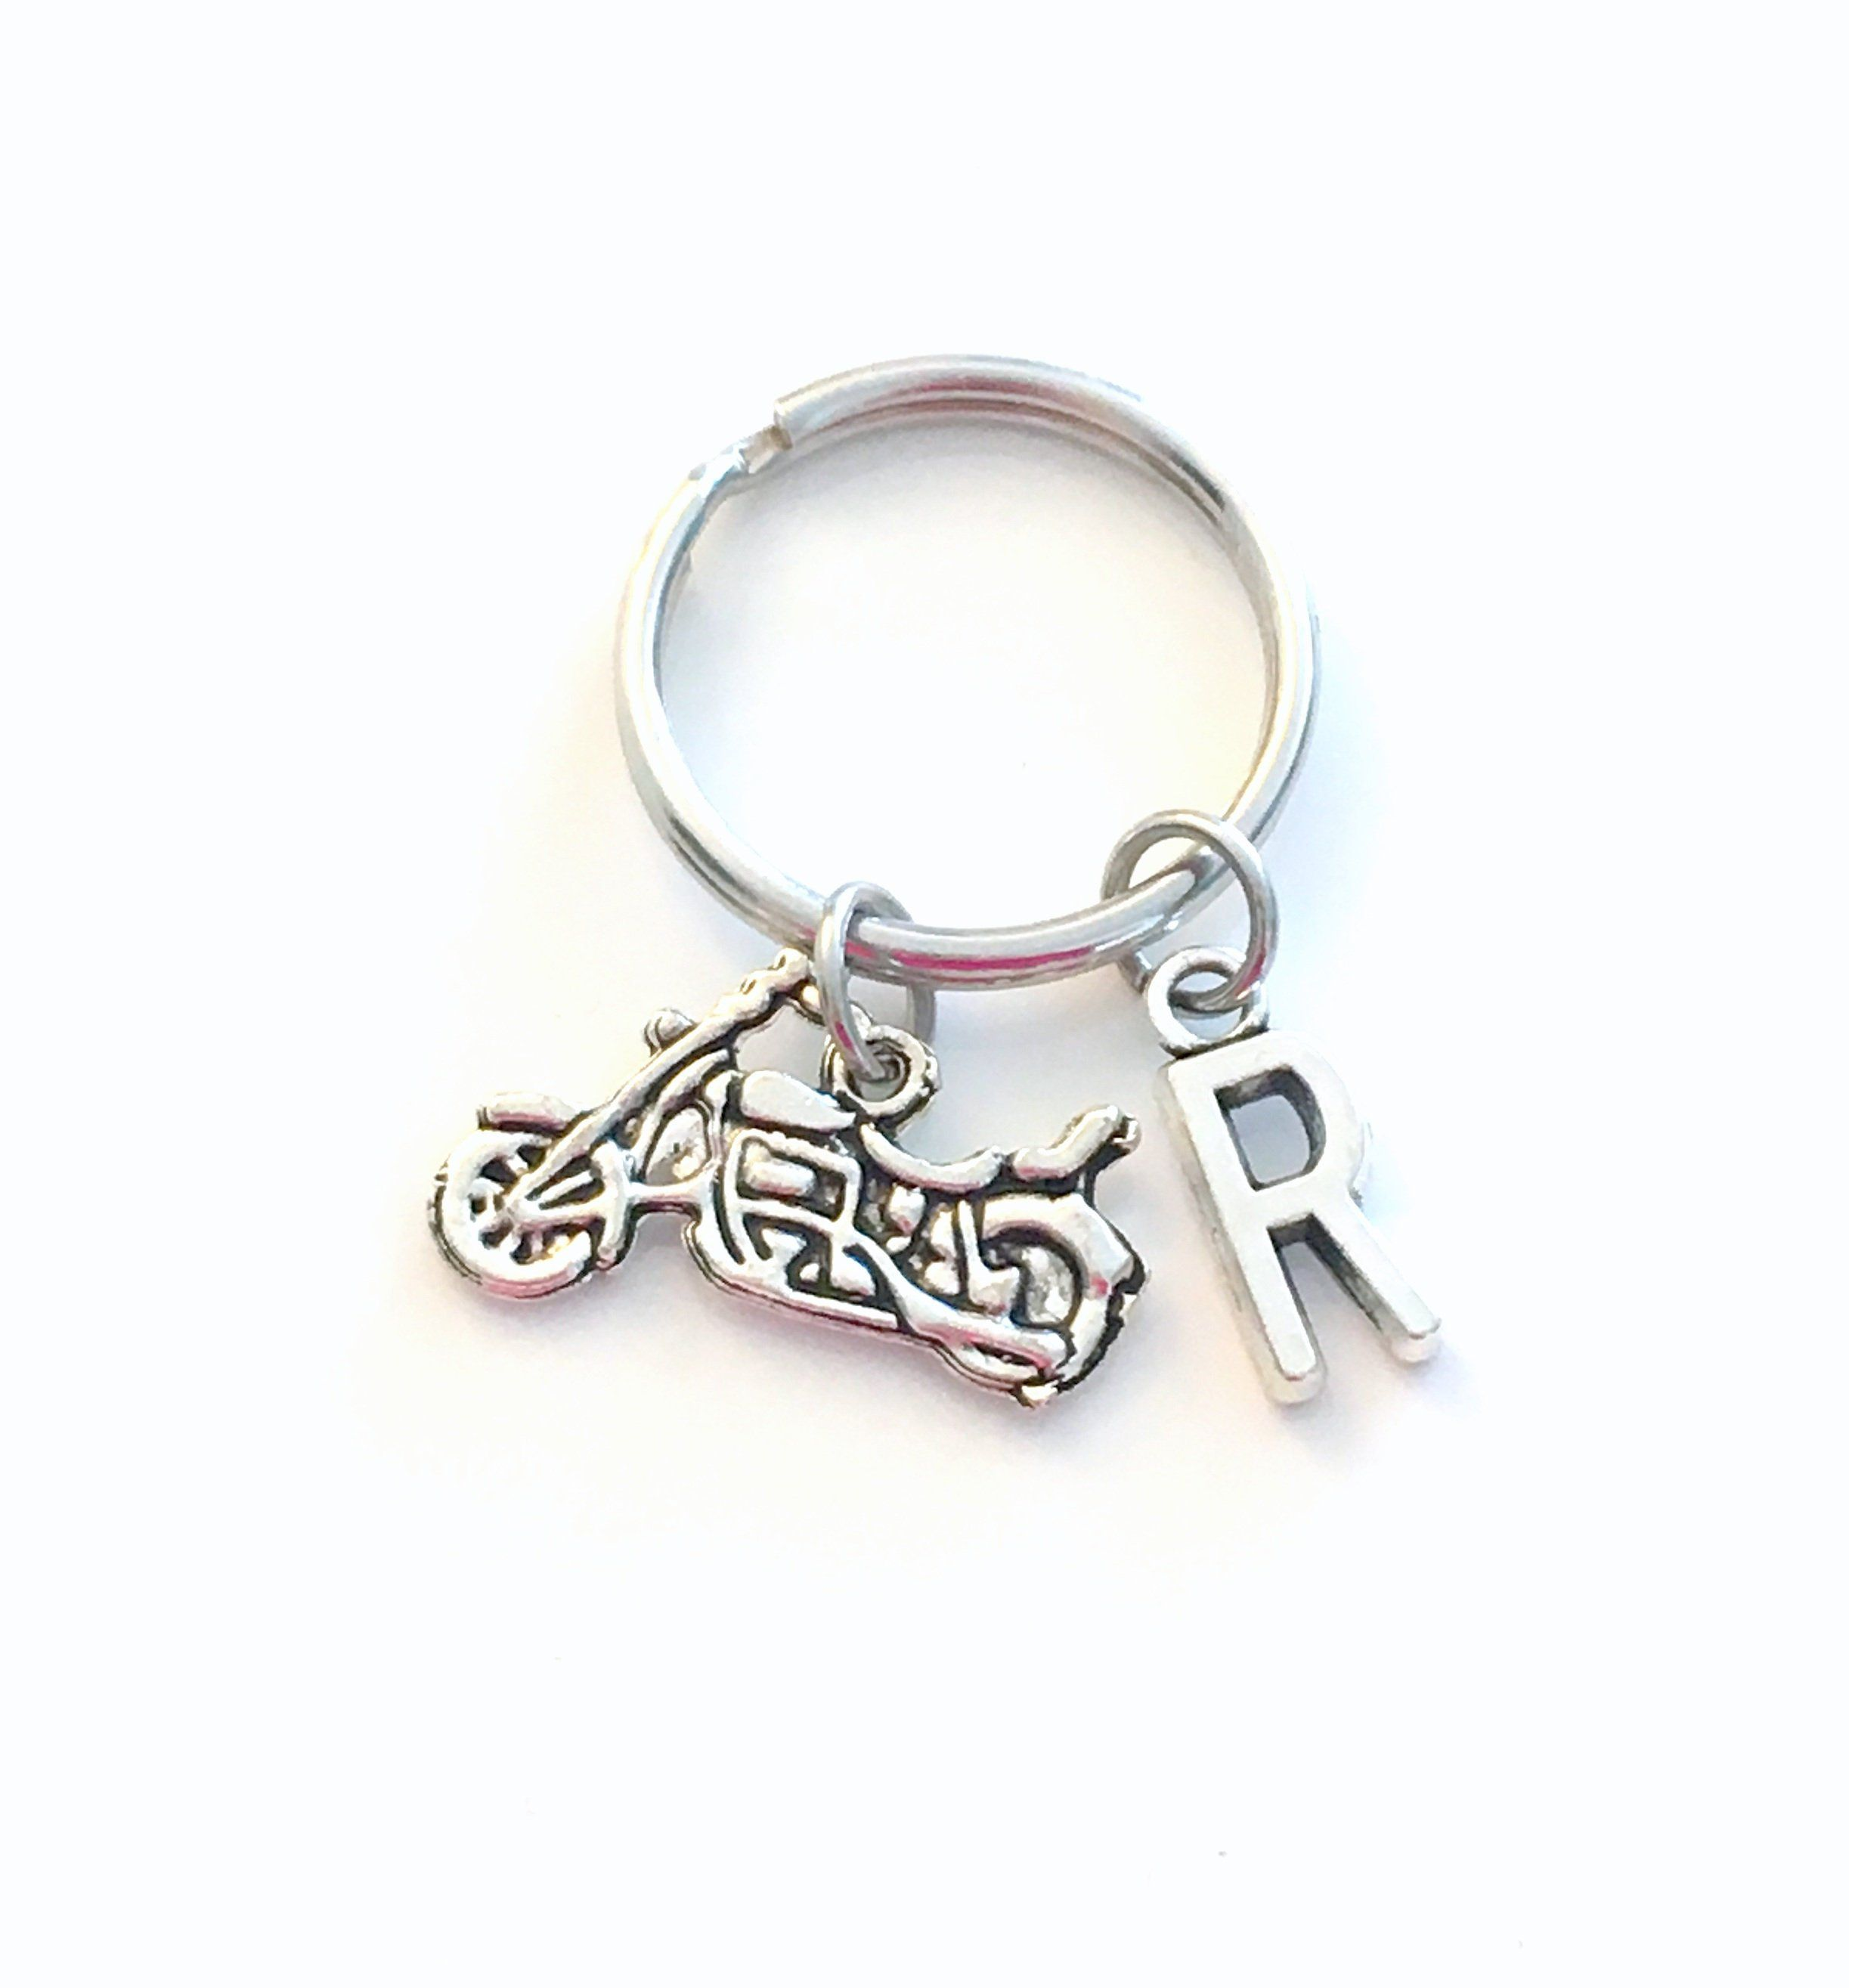 Personalized Motorcycle Keychain Biker Key Chain Silver Auto